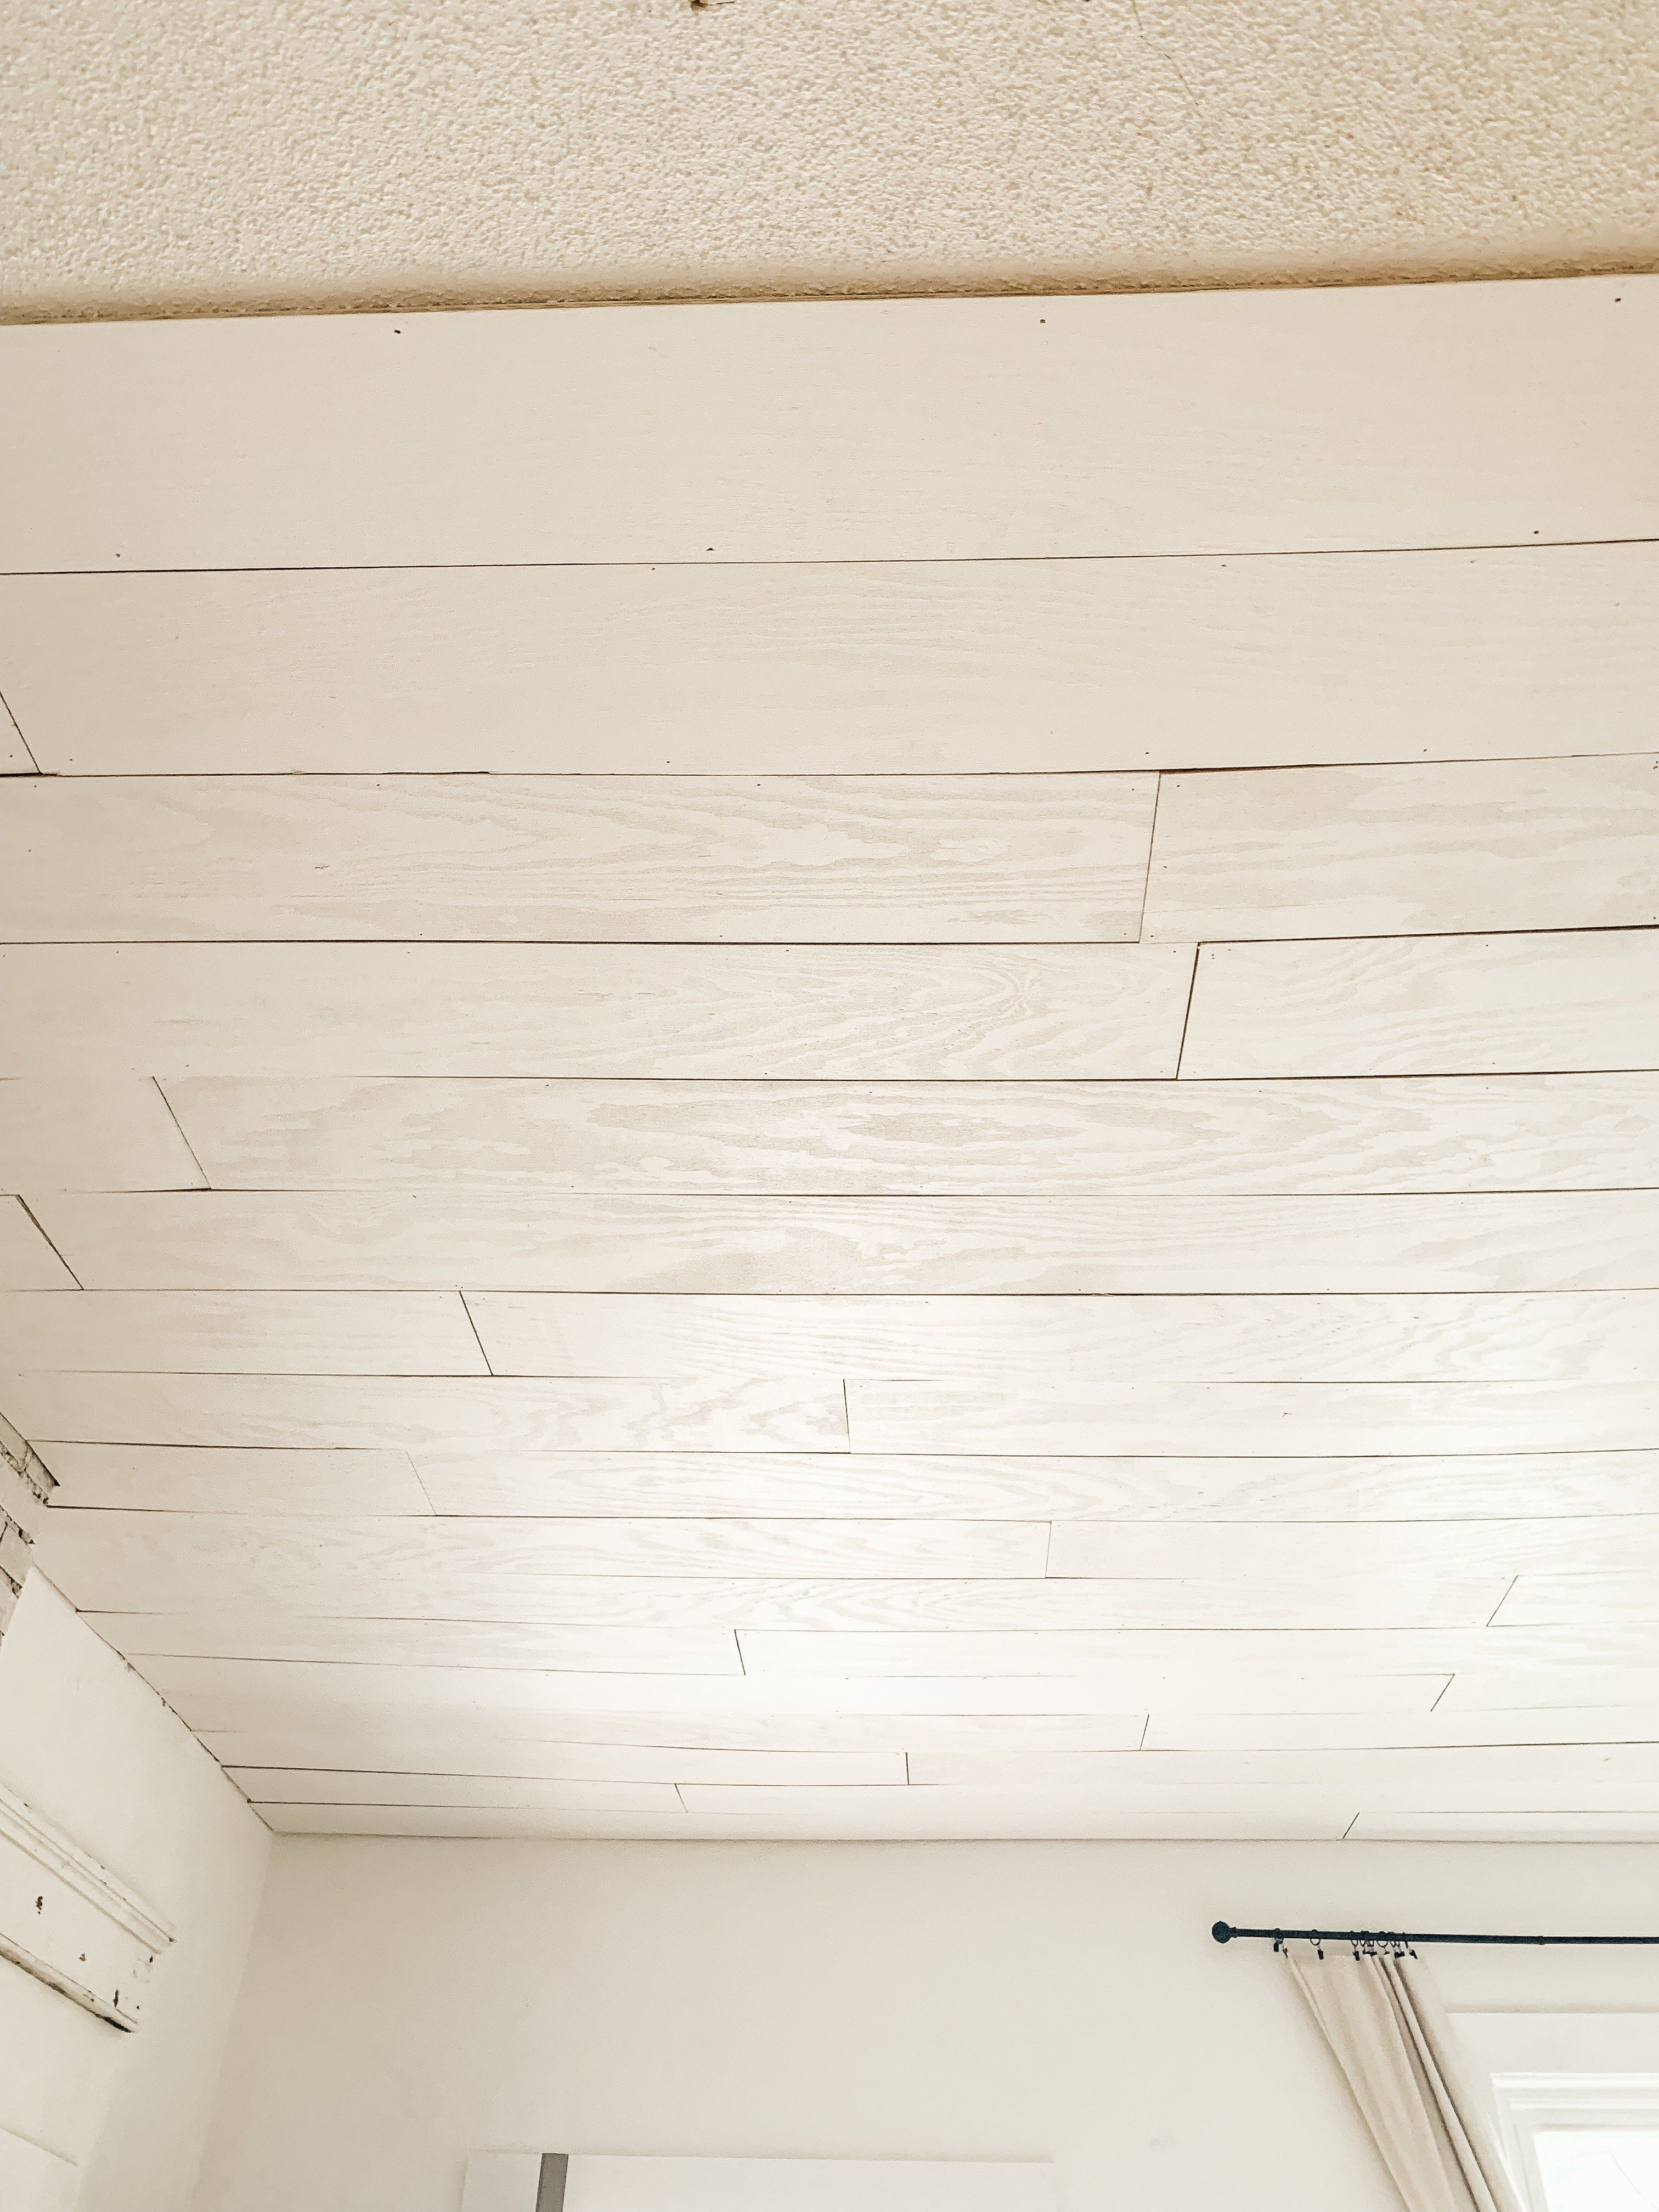 Plywood Plank Over Popcorn Ceiling